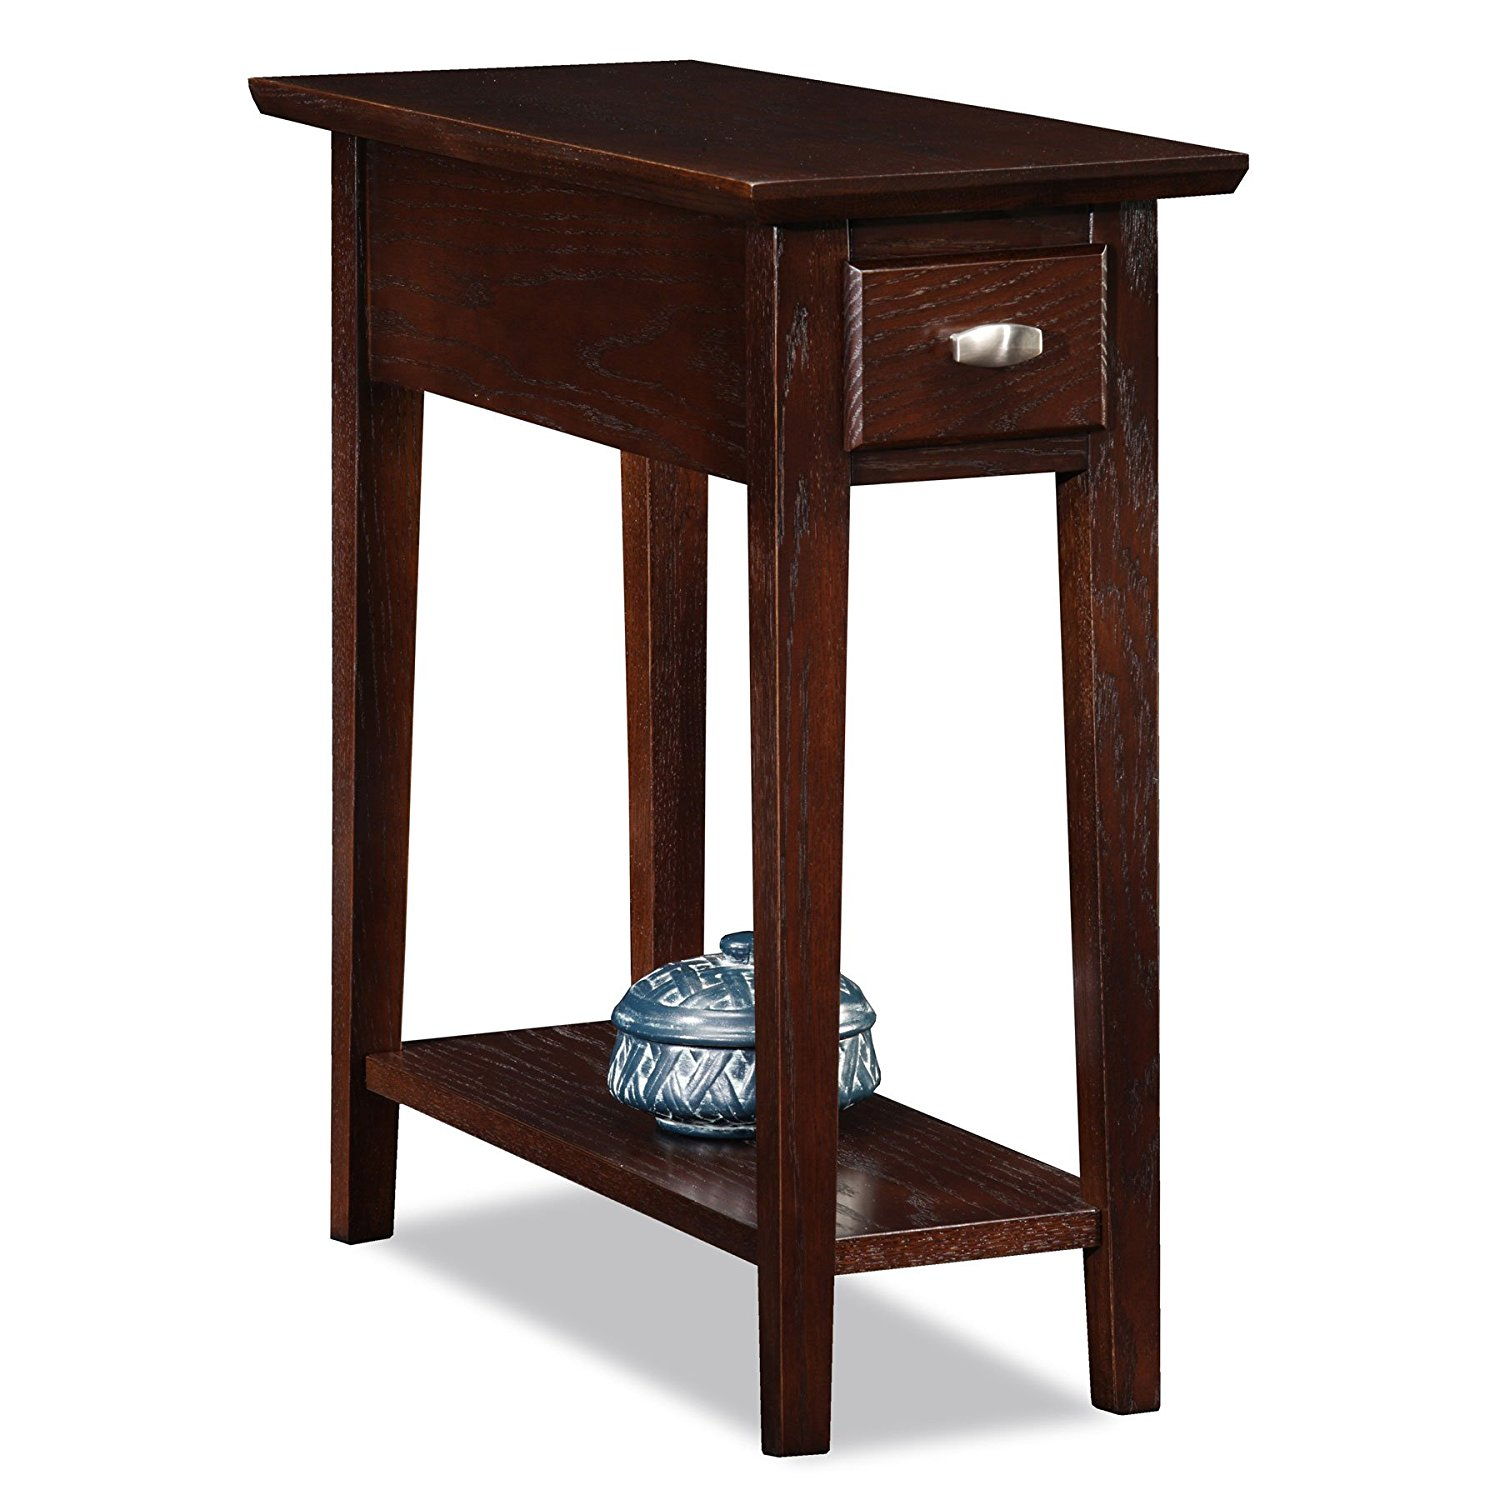 furniture complete your living room with new chairside end table wedge accent narrow side tables for bedroom leick tall drawer long adjustable legs small round tray slide bolt